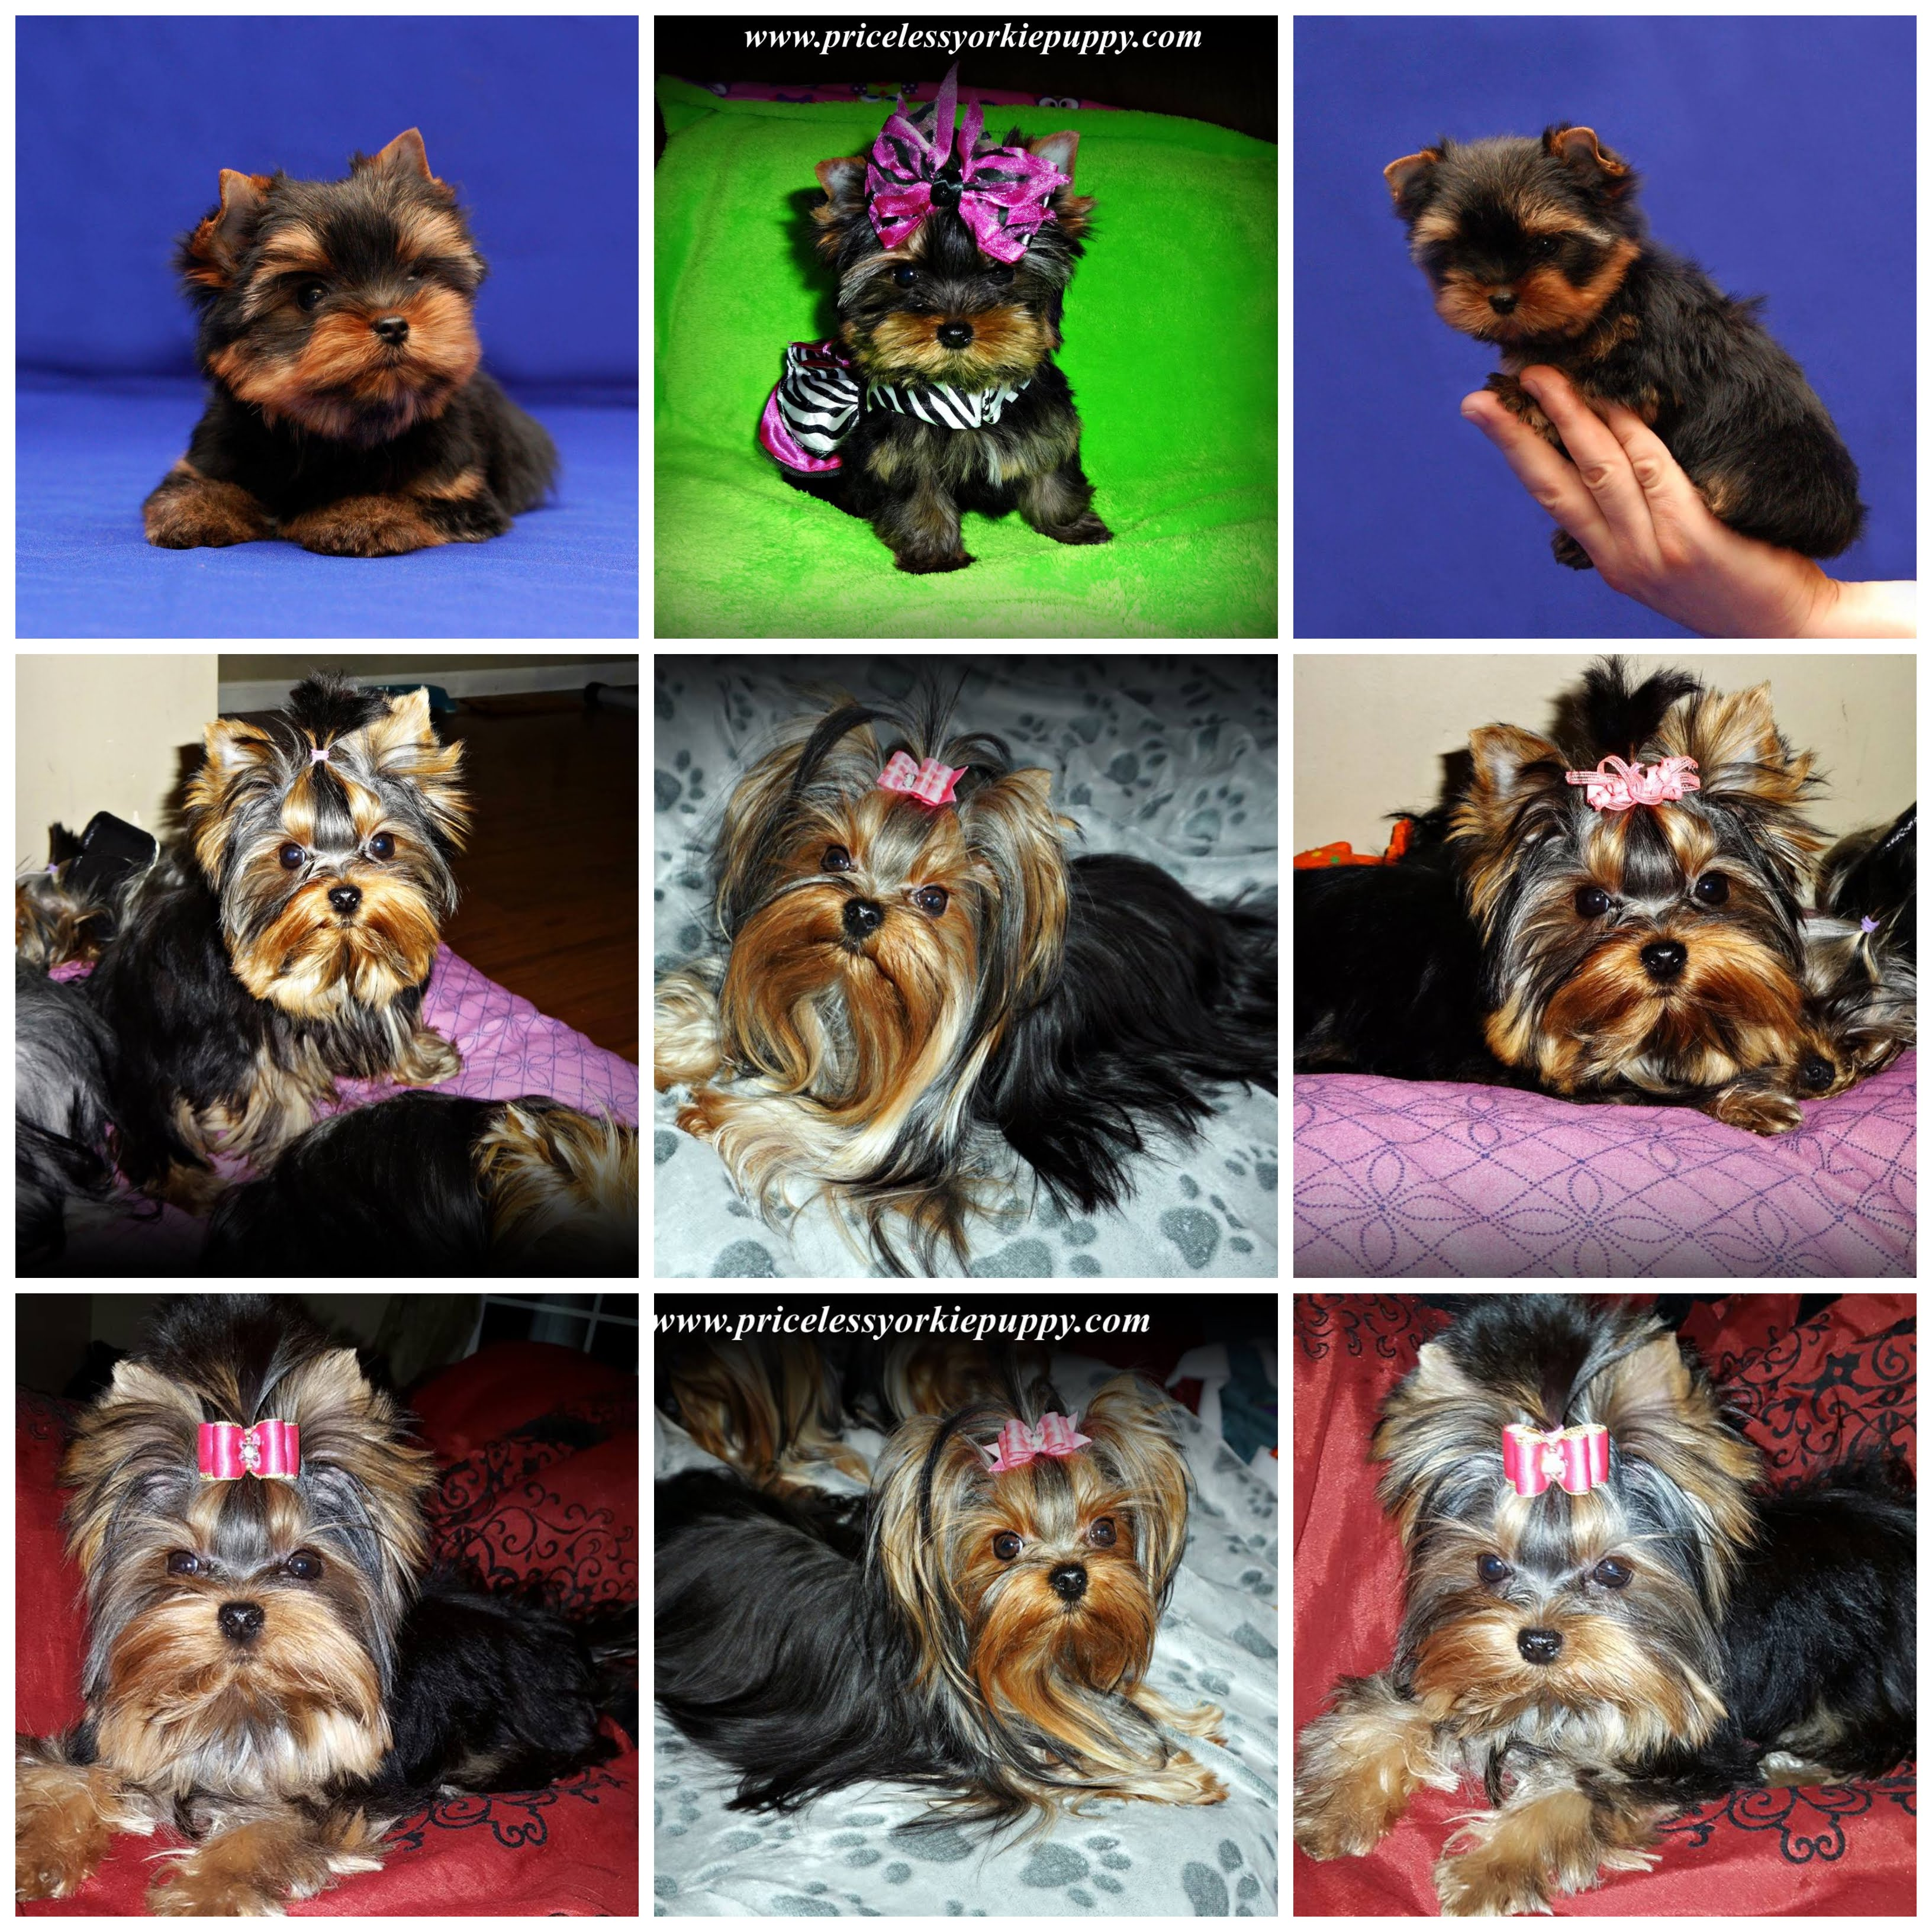 yorkie puppies for sale, yorkie puppies, yorkie puppy, yorkie breeder, yorkie breeders, Tanisha Breton, Michigan Yorkie Breeder tanisha breton, tanishabreton, 517-796-0259, 517-945-3291, Michigan Yorkies Tanisha Breton, Teacup Yorkies For Sale, Yorkie Puppies Sale, Yorkshire Terrier For Sale in Michigan, Yorkshire Terrier Dog Breeder Michigan, Yorkie, Dog, Yorkshire Terriers in Michigan, Teacup Yorkie Puppies, Yorkies Puppy Breeder, Michigan Yorkies, Puppy Breeder MI, Yorkshire Terriers for Sale in Michigan, Yorkies for sale in Michigan, Yorkshire Terrier Puppies for Sale in Michigan, Yorkie Puppies for Sale, Yorkies For Sale‎, Teacup Yorkie Puppies, Yorkshire Terrier breeder located in Michigan, yorkie puppies, American Kennel Club, AKC, Yorkshire Terrier Dog Breeders, yorkie-breeders, Yorkshire Terrier Breeders, Yorkshire Terrier Puppies for Sale, Yorkshire Terrier Puppies, Yorkshire Terrier puppies for sale, Yorkshire Terrier dogs for adoption and Yorkshire Terrier dog breeders, Yorkshire Terrier puppies for sale and dogs for adoption, Yorkie Puppies Sale, Teacup Yorkies, Yorkies For Sale, Puppies For sale, AKC Yorkshire Terrier Puppies for sale, AKC Teacup Yorkie, yorkie breeder, Yorkshire Breeder, Yorkshire Terrier Dog Breeders, Teacup Yorkie Puppies, Yorkshire Terrier For Sale in Jackson, Michigan, Michigan Breeder, Michigan Tiny Yorkies is your place to find the most amazing Yorkies for sale, Michigan yorkie, Michigan yorkies, Michigan yorkshire terriers, Michigan yorkshire terrier, Michigan yorkie puppy, Michigan yorkie puppies, Michigan yorkie breeder, Michigan yorkie breeders, Michigan yorkies for sale, Michigan yorkie for sale, Michigan yorkshire terriers for sale, Michigan yorkshire terrier for sale, Michigan yorkie puppies for sale, Michigan yorkie puppy for sale, Michigan yorkshire terrier puppy for sale, Michigan yorkshire terrier puppies for sale, Yorkie Puppies For Sale, Yorkie growth chart, yorkies near me, yorkie for sale Michigan, yorkie Michigan, Yorkie Breeders Michigan, yorkies teacup, teacup yorkie, teacup yorkies for sale, teacup yorkies, teacup york, yorkshire terrier price, yorkie puppy price, yorkie price, yorkie puppy growth chart, teacup yorkies for sale in Michigan, teacup puppies for sale in Michigan, yorkie Michigan, Yorkshire Michigan, Yorkshire terrier Michigan, Yorkie breeder, Yorkshire breeder, dogs, dog, pup, pups, puppy, puppies, toy yorkie breeders, AKC, American Kennel Club, Teddy Bear, Babydoll, Baby doll, tiny, teacup, micro, toy, yorkies, yorkie, puppy, puppies, yorkie breeder, Michigan Yorkie Breeder, Michigan Yorkie, Michigan Yorkies, Michigan Yorkshire, Michigan Puppy, Extreme babydoll faced yorkies, Teacup Puppies, Teacup Yorkies, Teacup Female, Teacup Girl, Teacup Yorkies, teacup yorkies for sale, teacup Yorkshire terriers for sale, teacup yorkie puppies for sale,